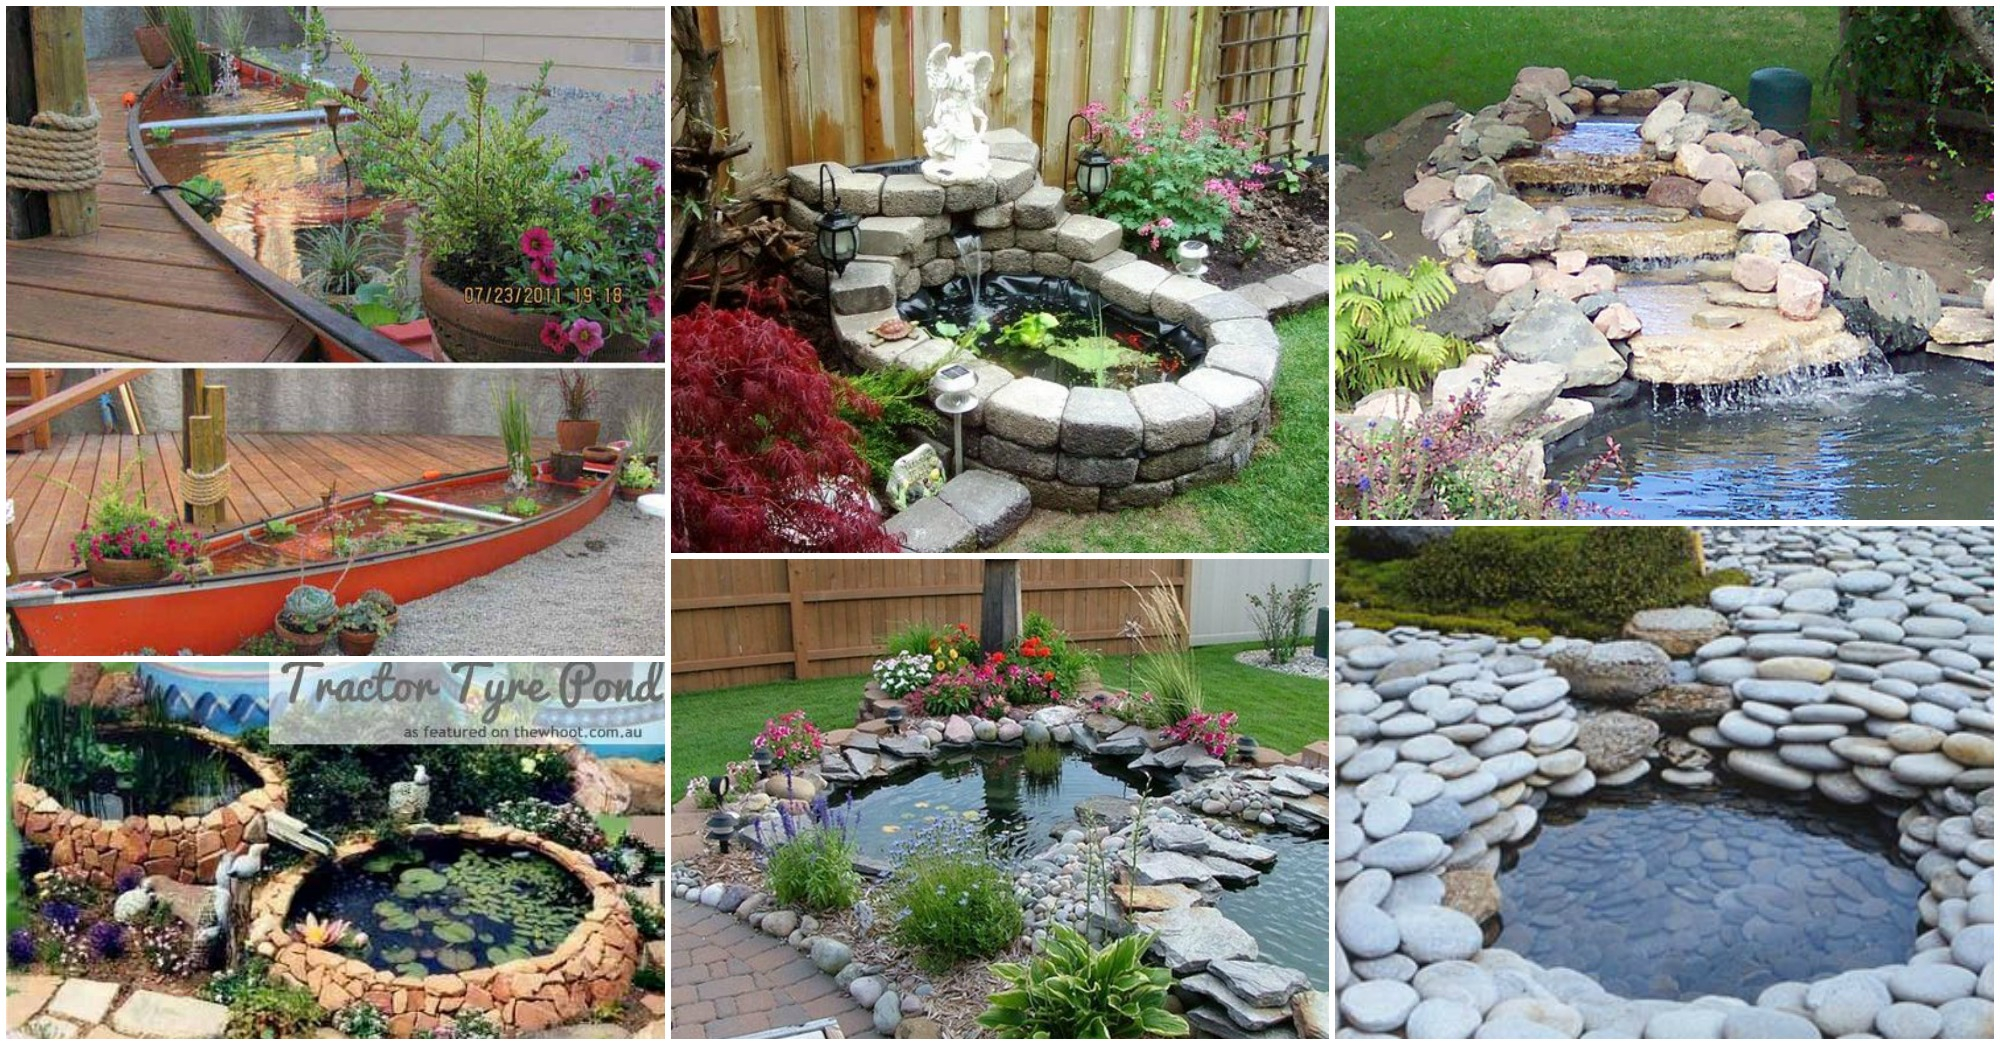 20 Diy Backyard Pond Ideas On A Budget That You Will Love throughout 11 Some of the Coolest Designs of How to Craft Diy Backyard Pond Ideas